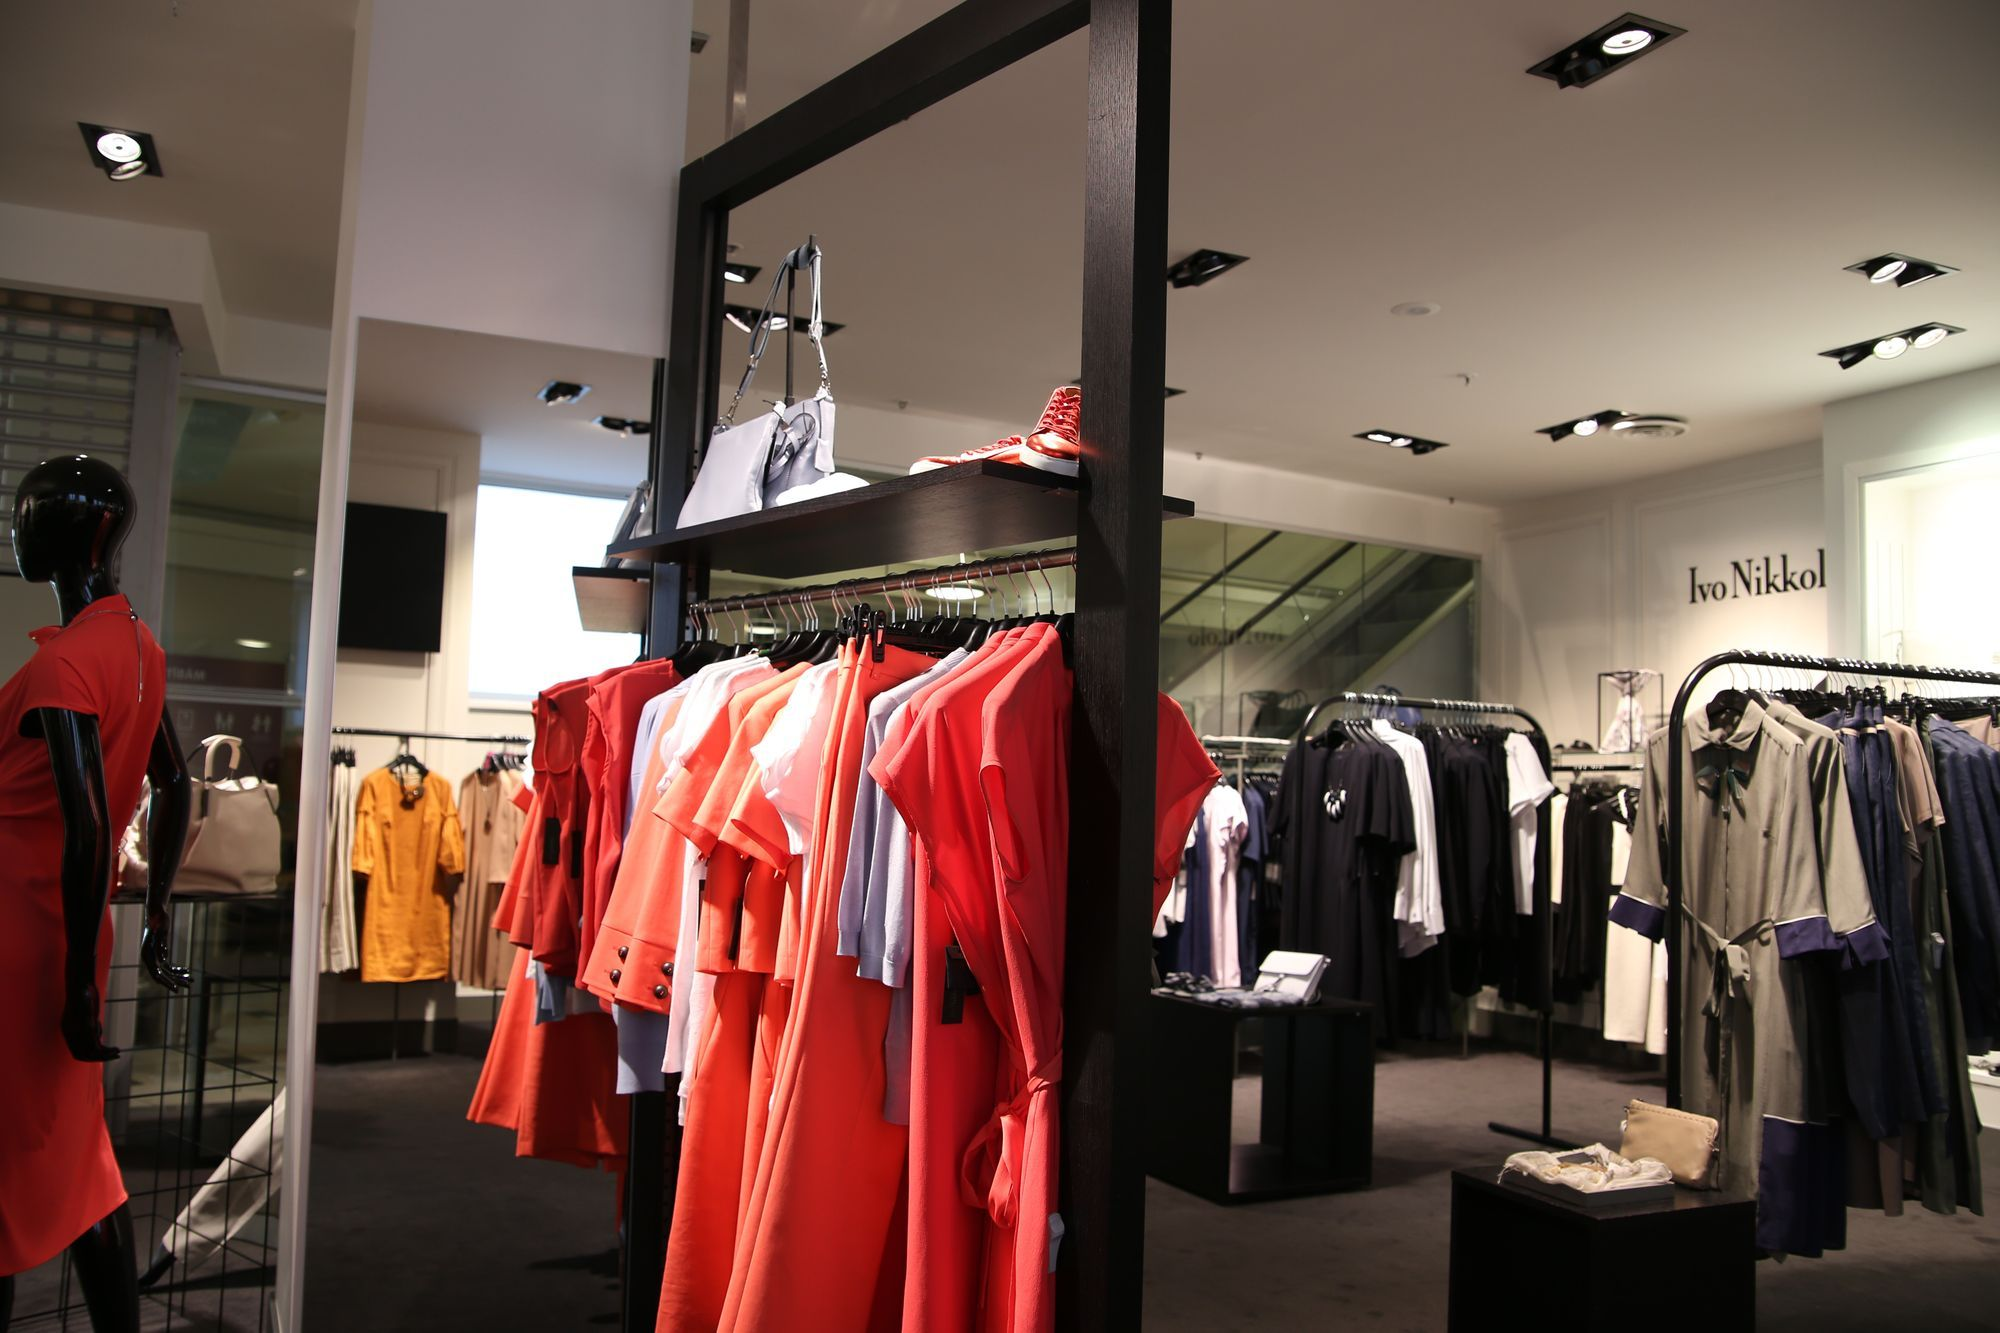 How to Design Retail Store Layout to Increase Sales